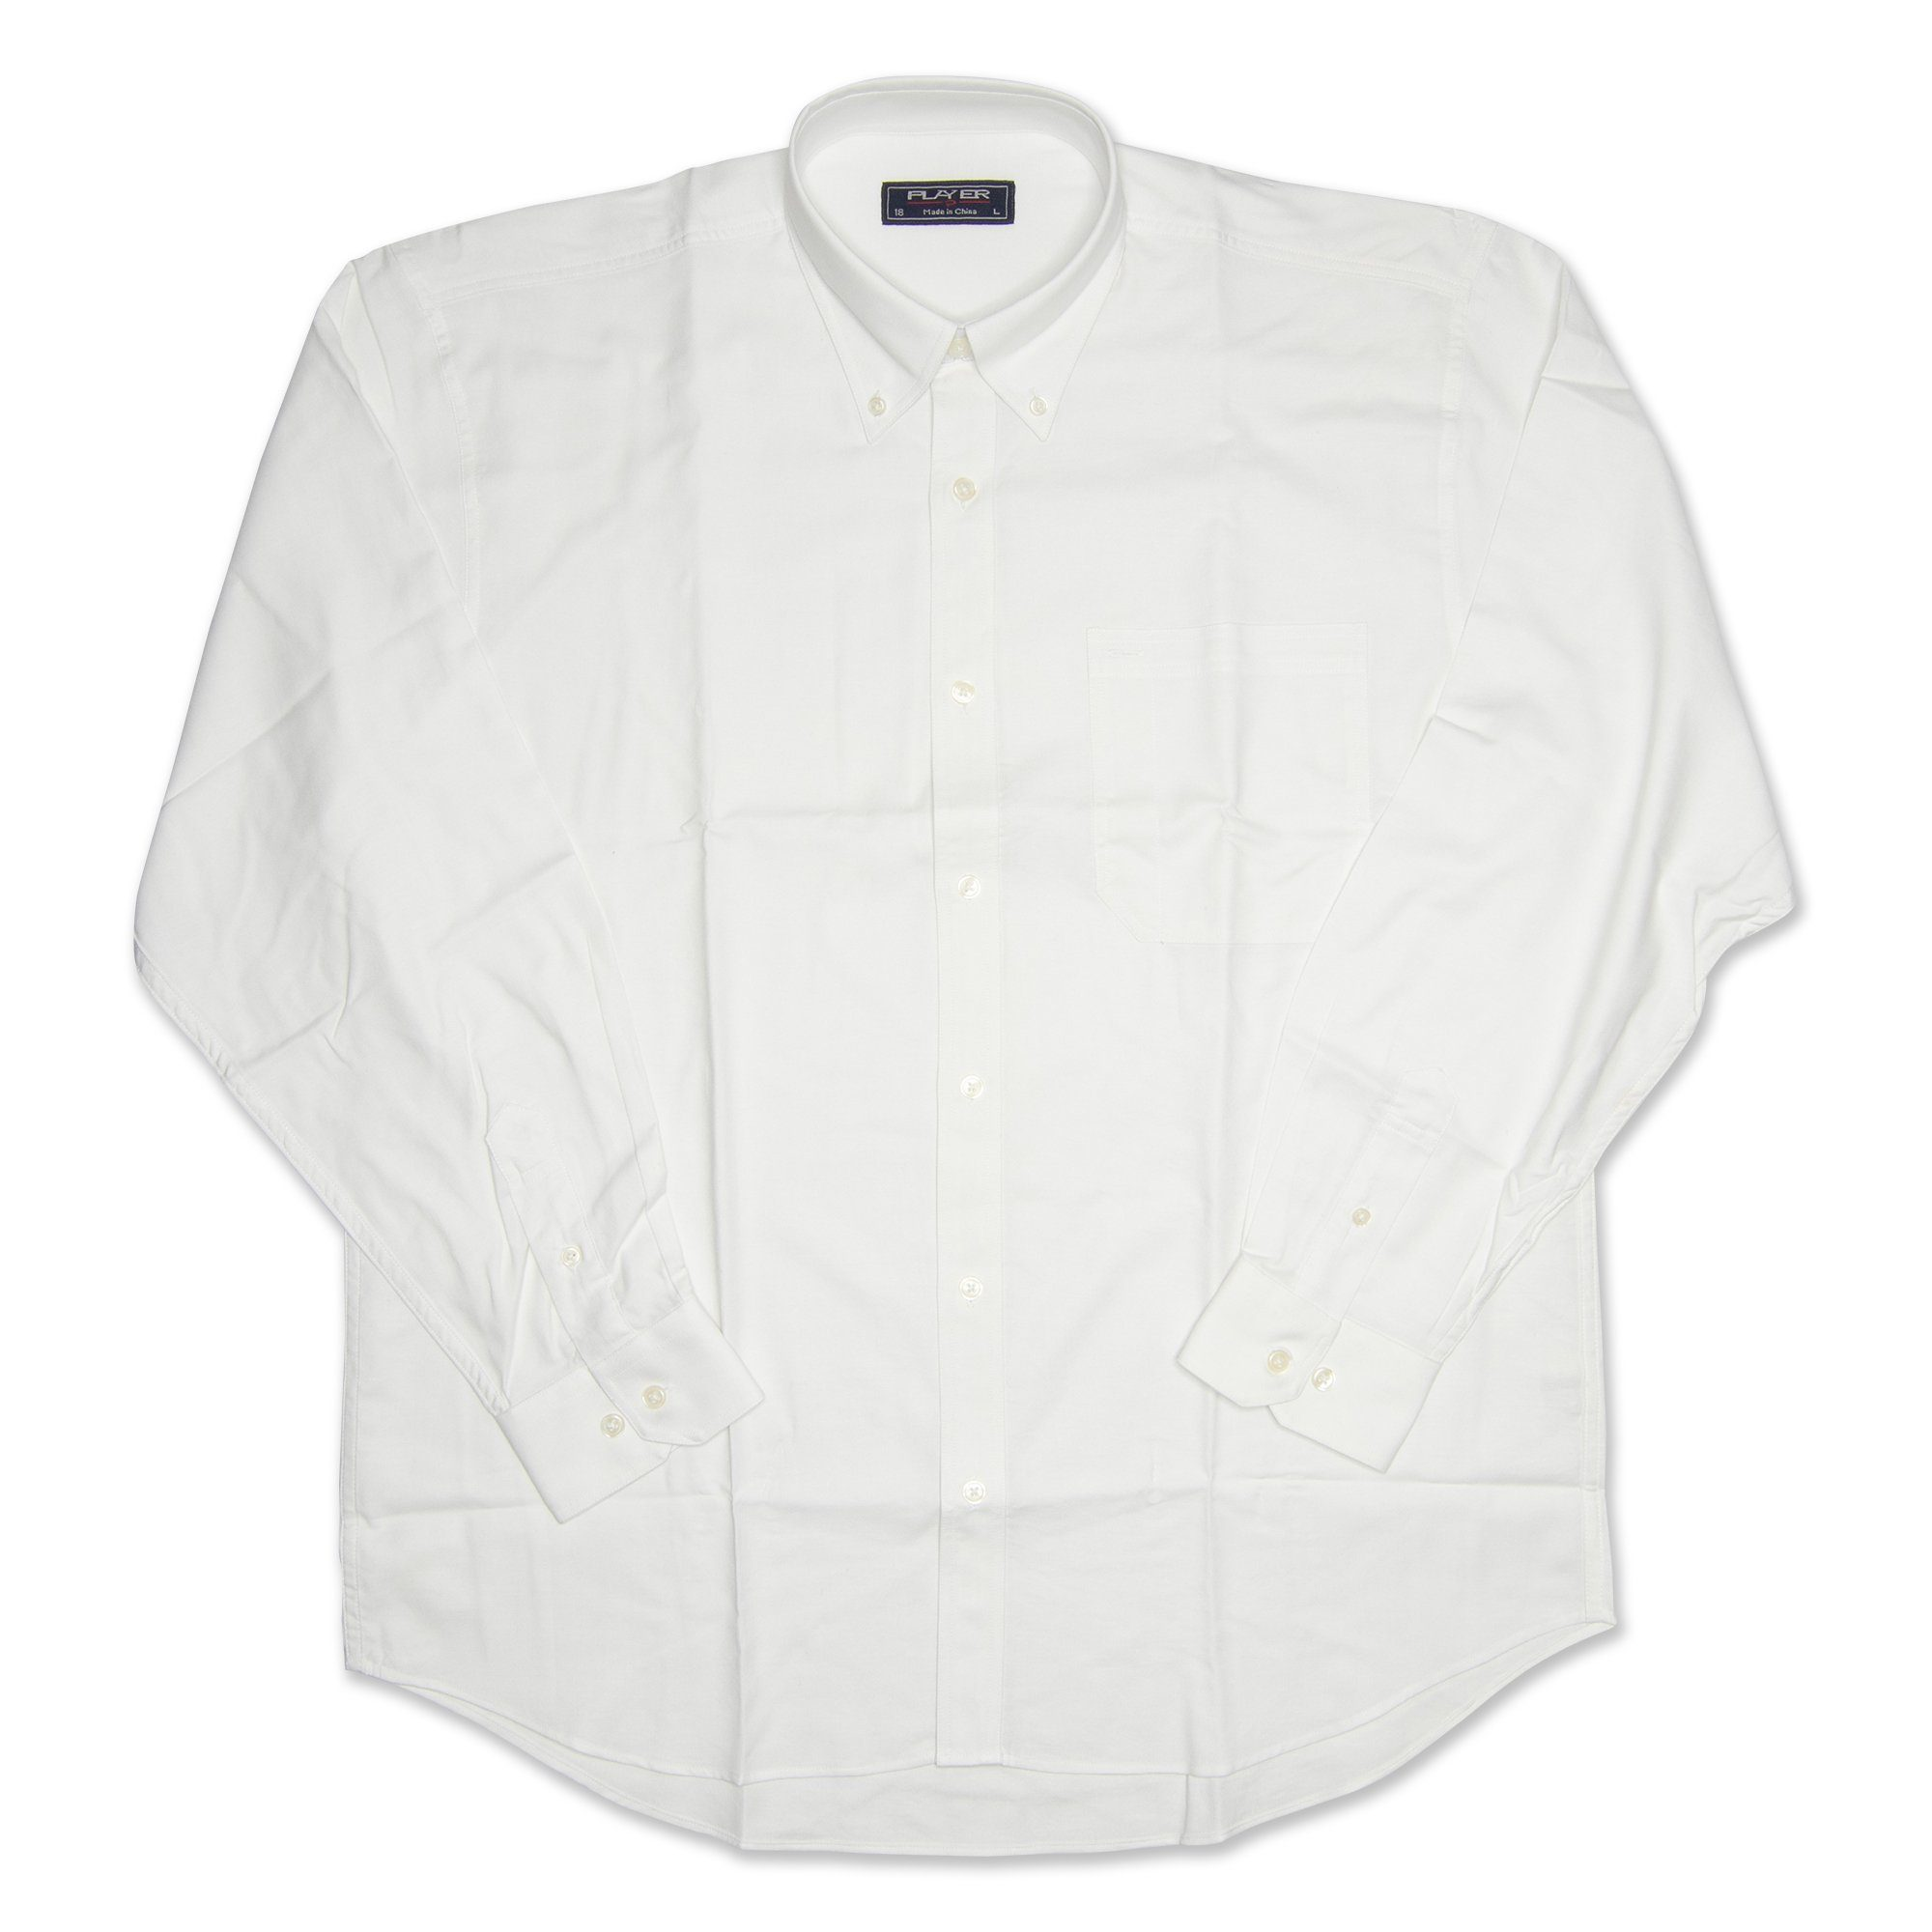 Player Business Women's Shirt - White Workwear Player